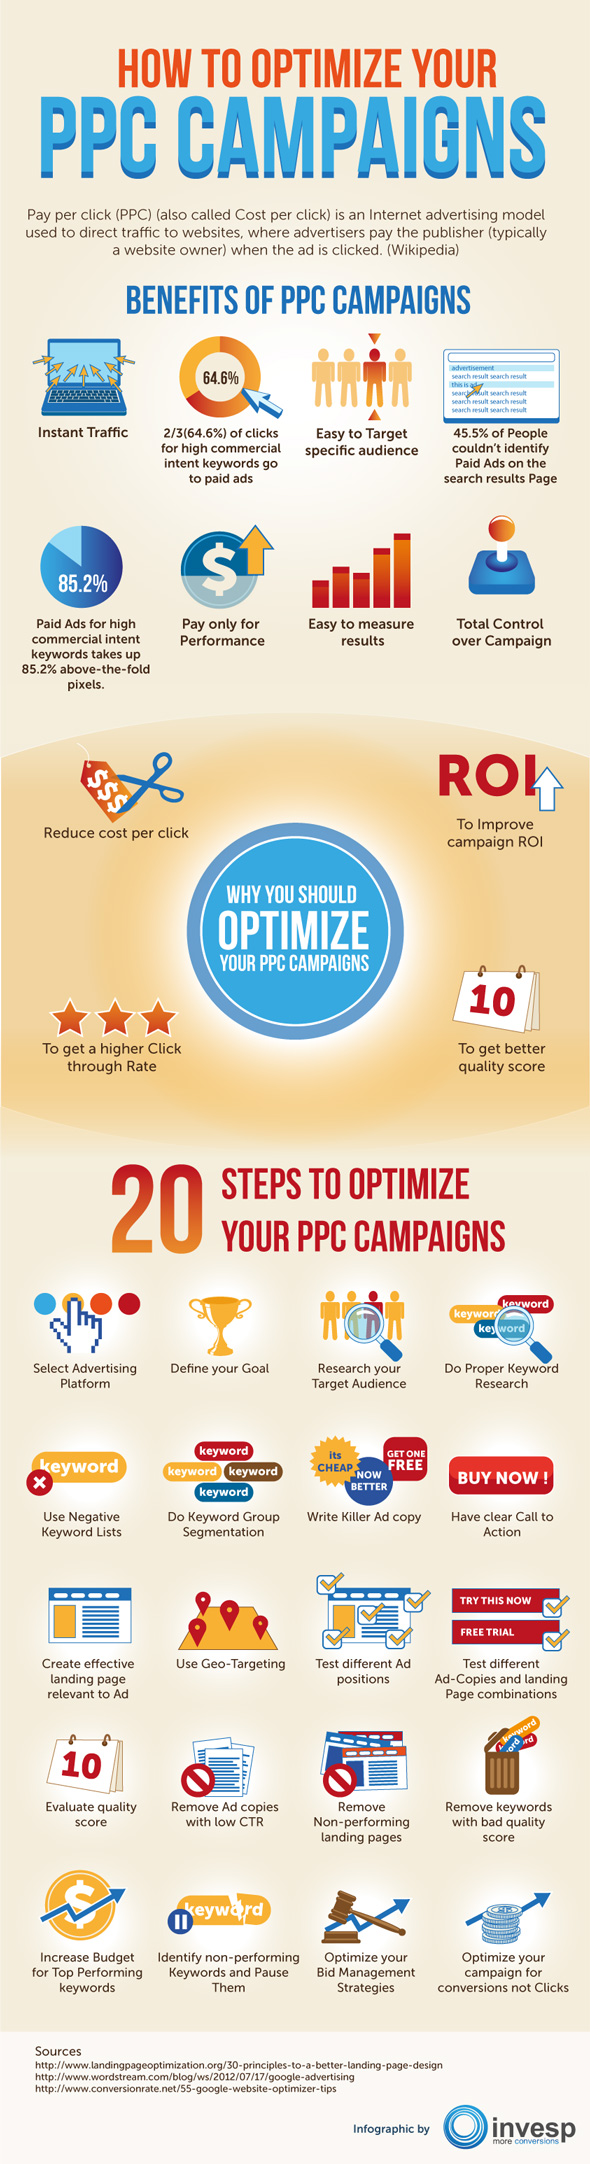 Optimizing Your PPC Campaigns